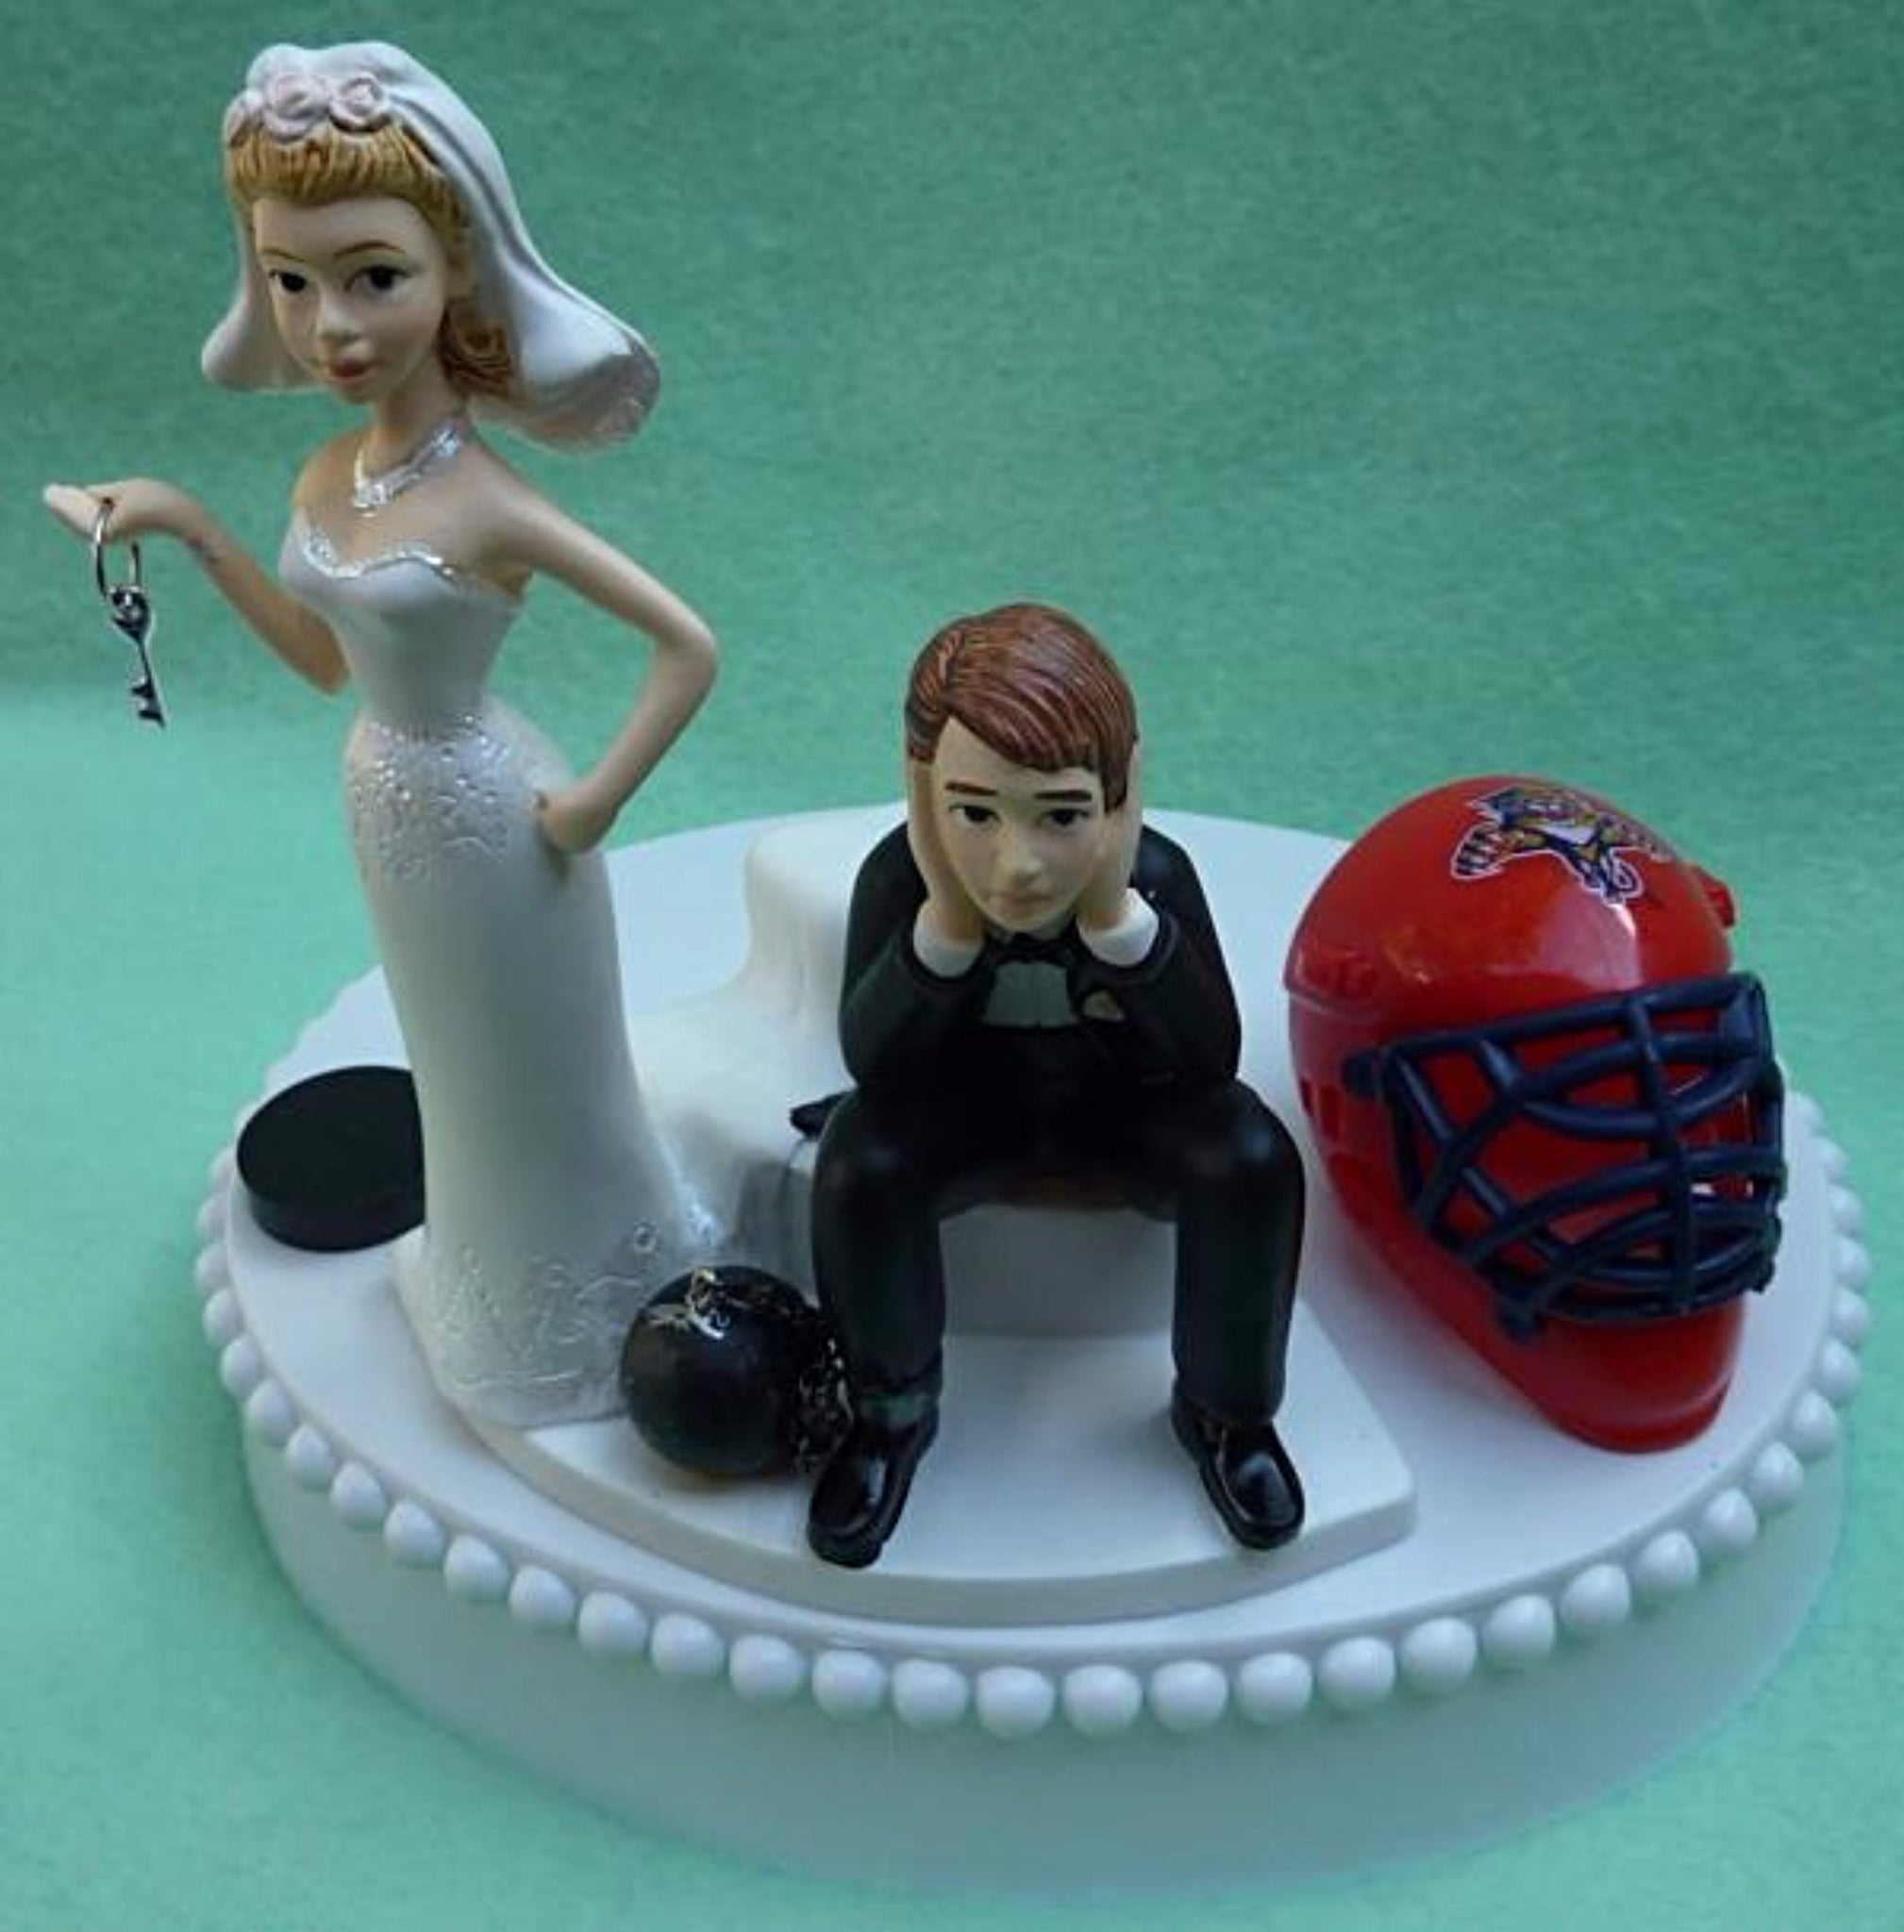 Florida Panthers wedding cake topper NHL hockey sports fans bride groom humorous FunWeddingThings.com funny unique original mask puck helmet